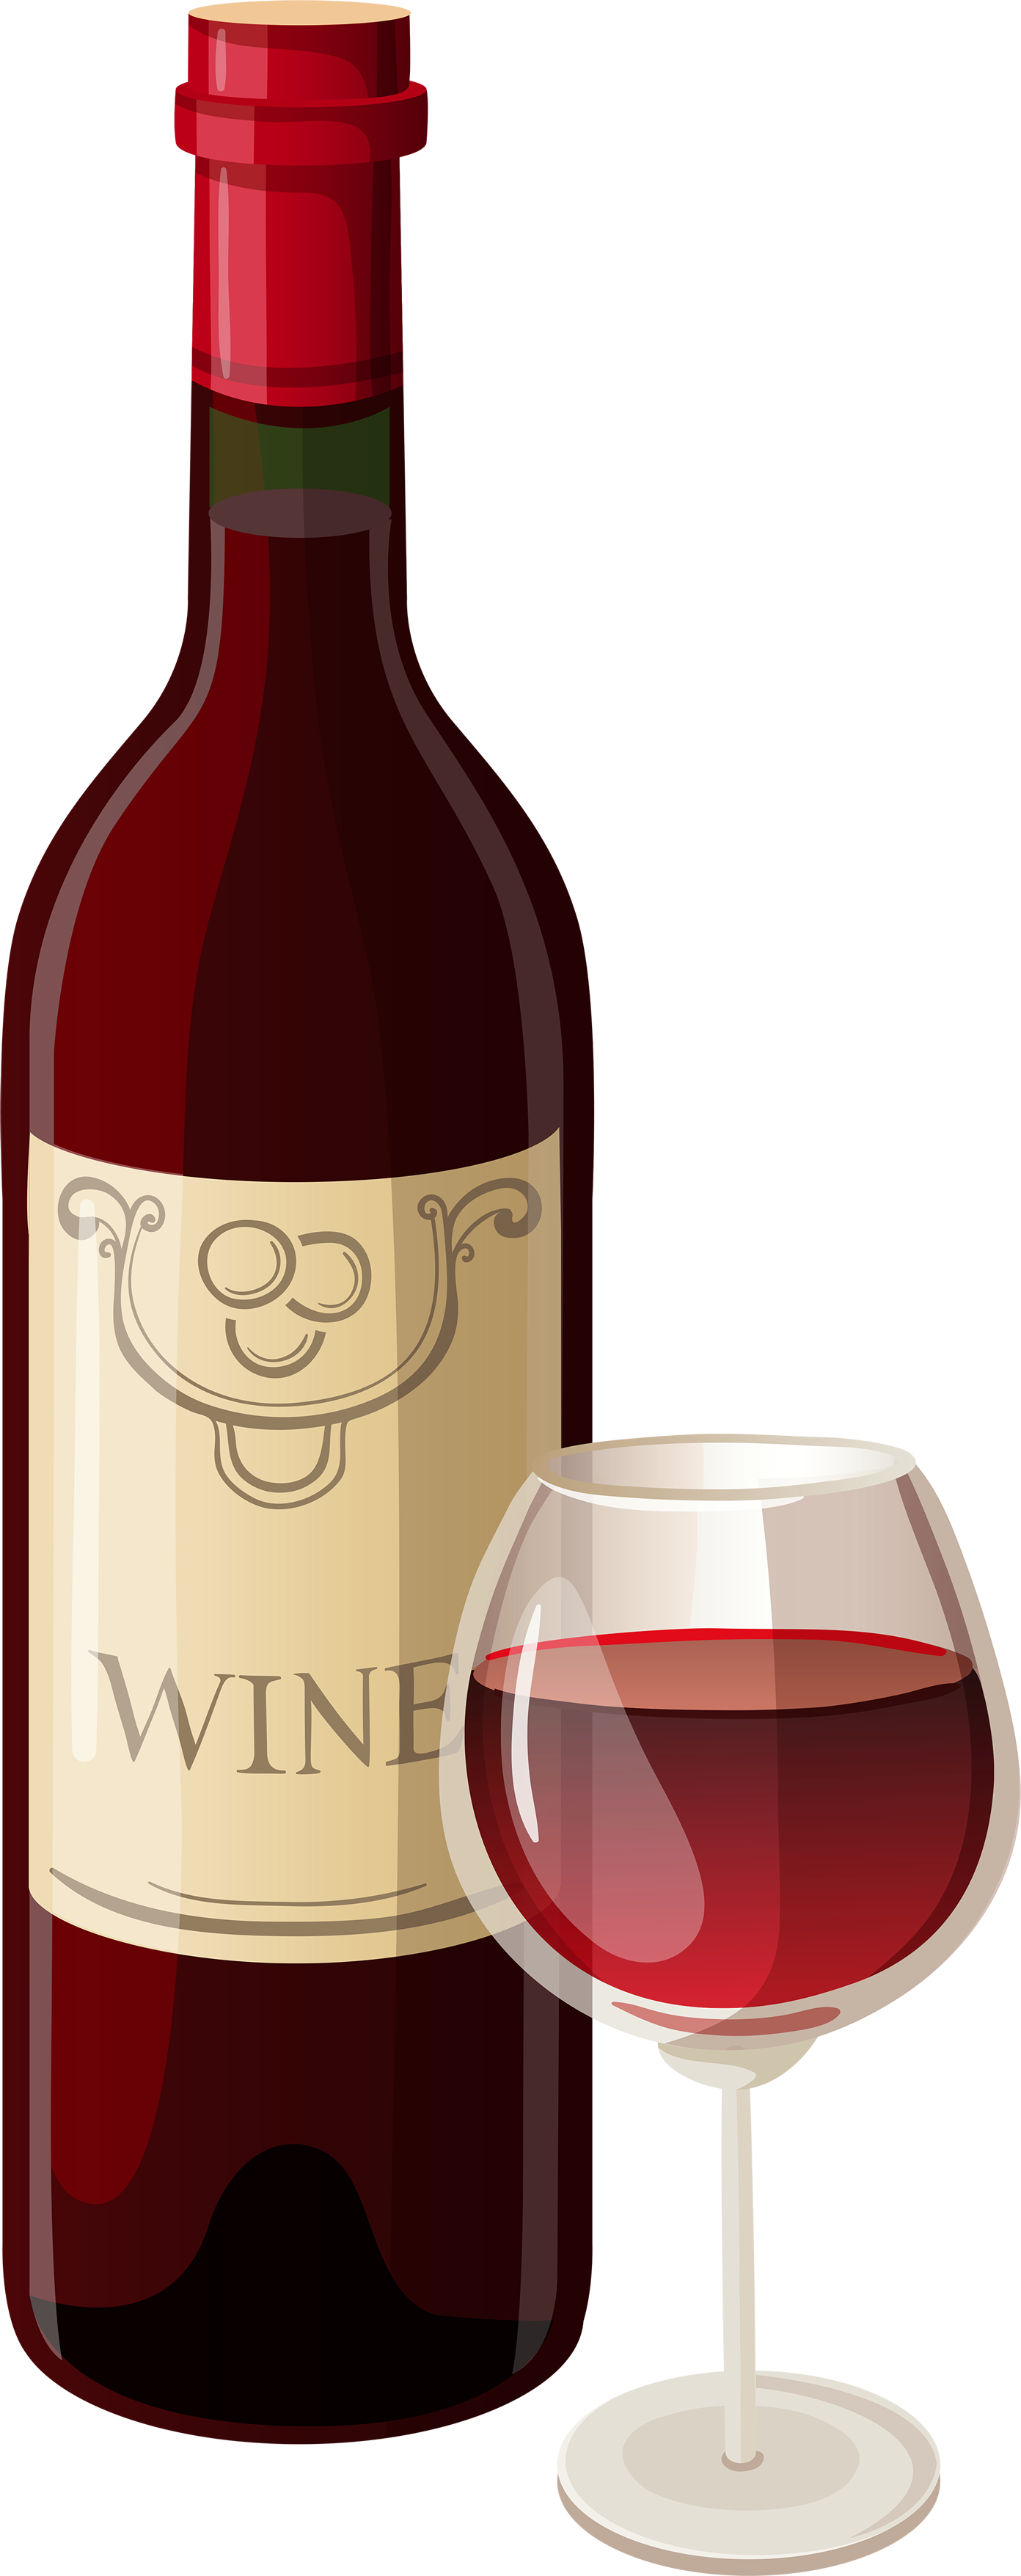 hight resolution of image result for wine bottle and glass clip art